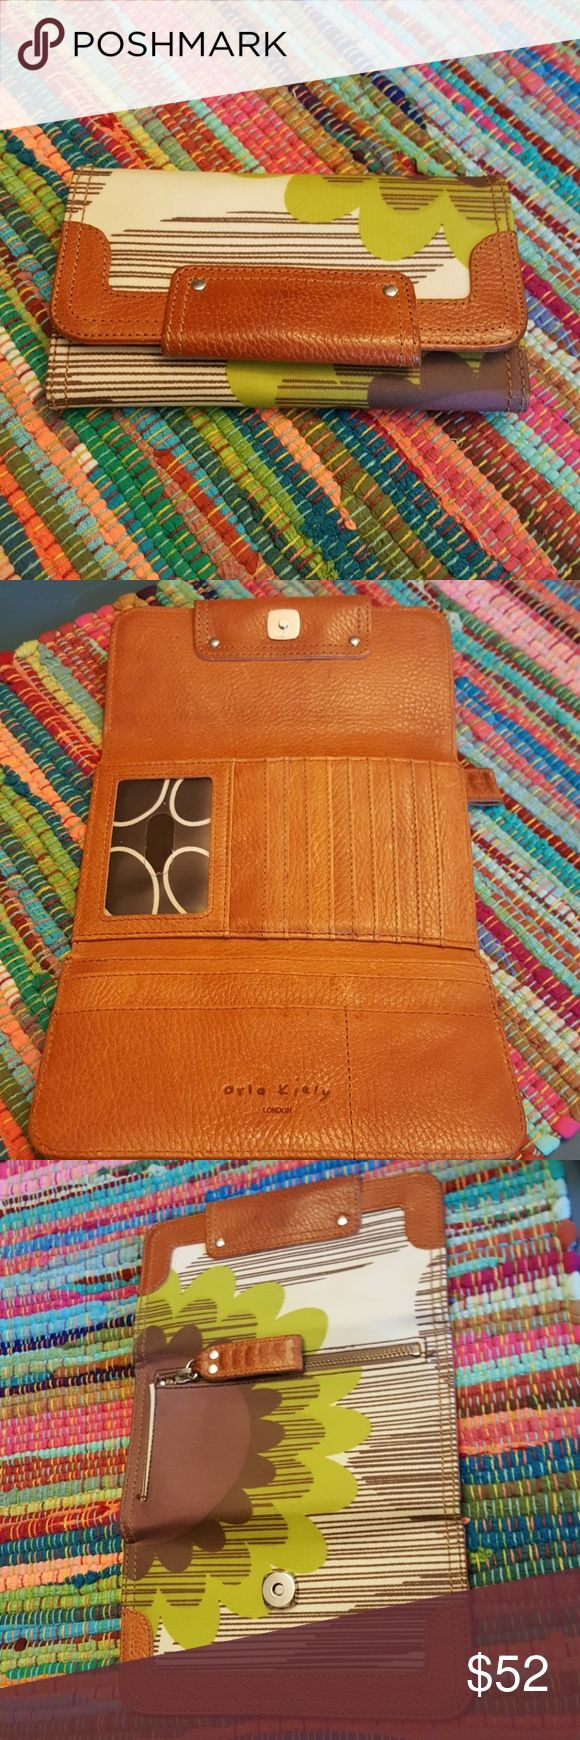 """RARE ORLA KIELY WALLET Leather brown purple green pattern.  Clutch listed separately in another listing of mine.  Small signs of use otherwise in great shape.8×4"""" Anthropologie Orla Kiely Bags Wallets"""